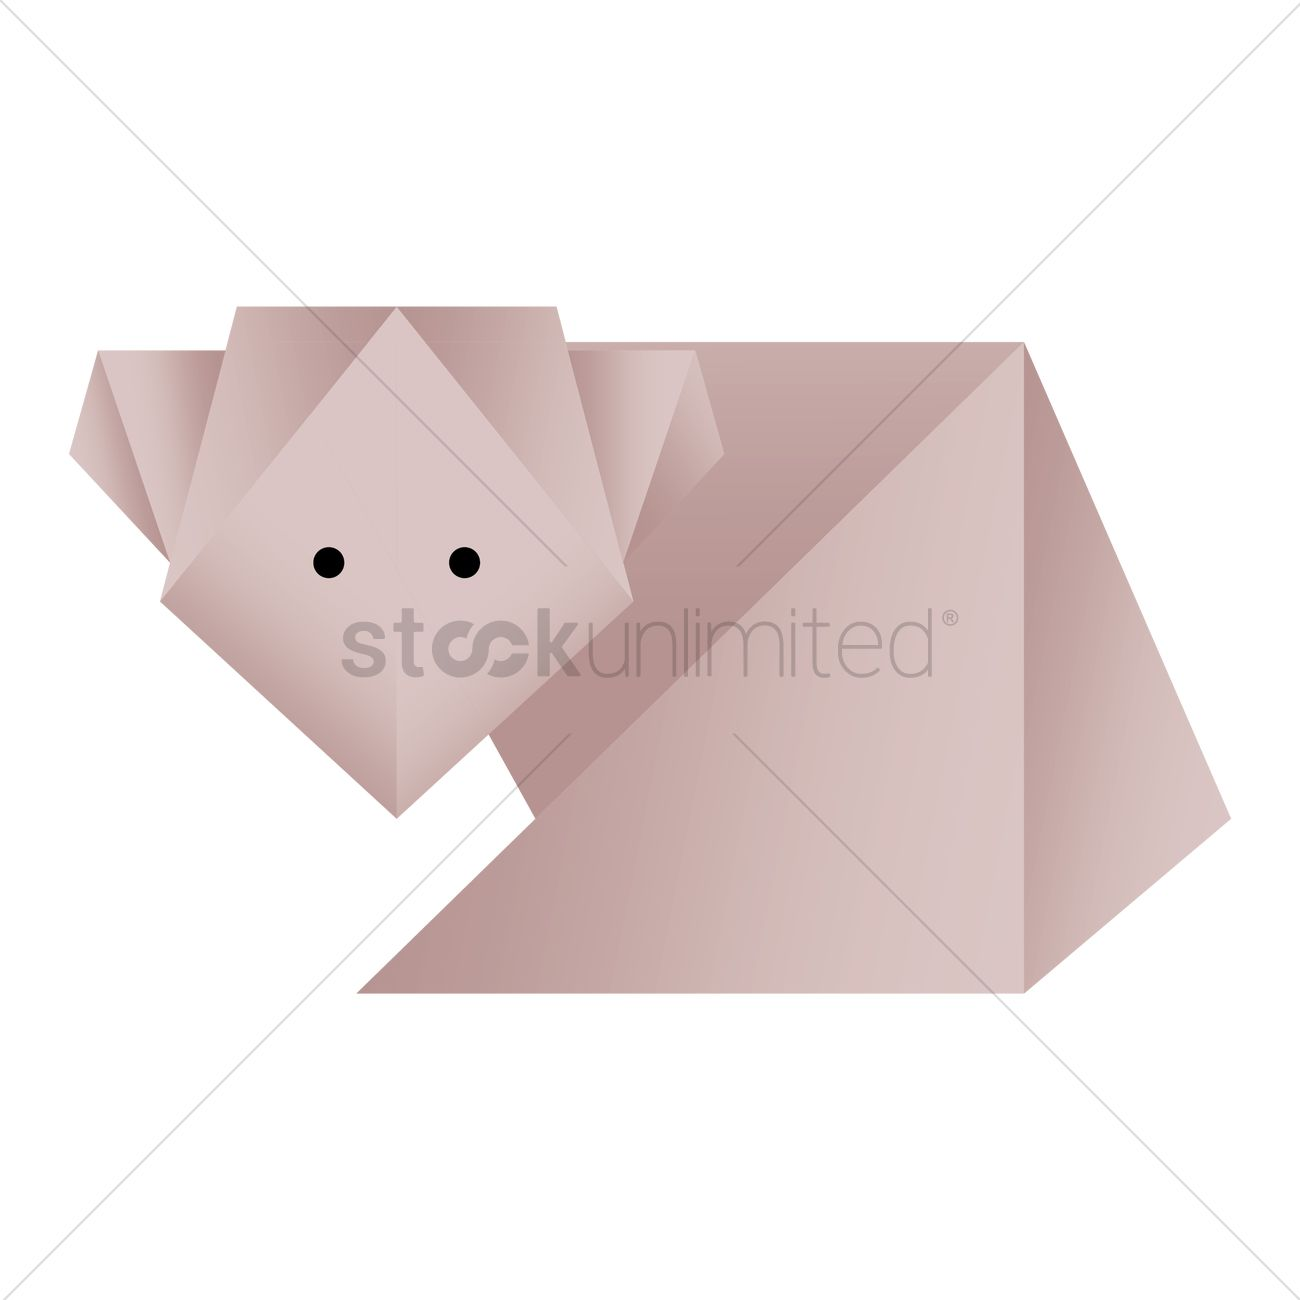 How To Make An Origami Bear - YouTube | 1300x1300